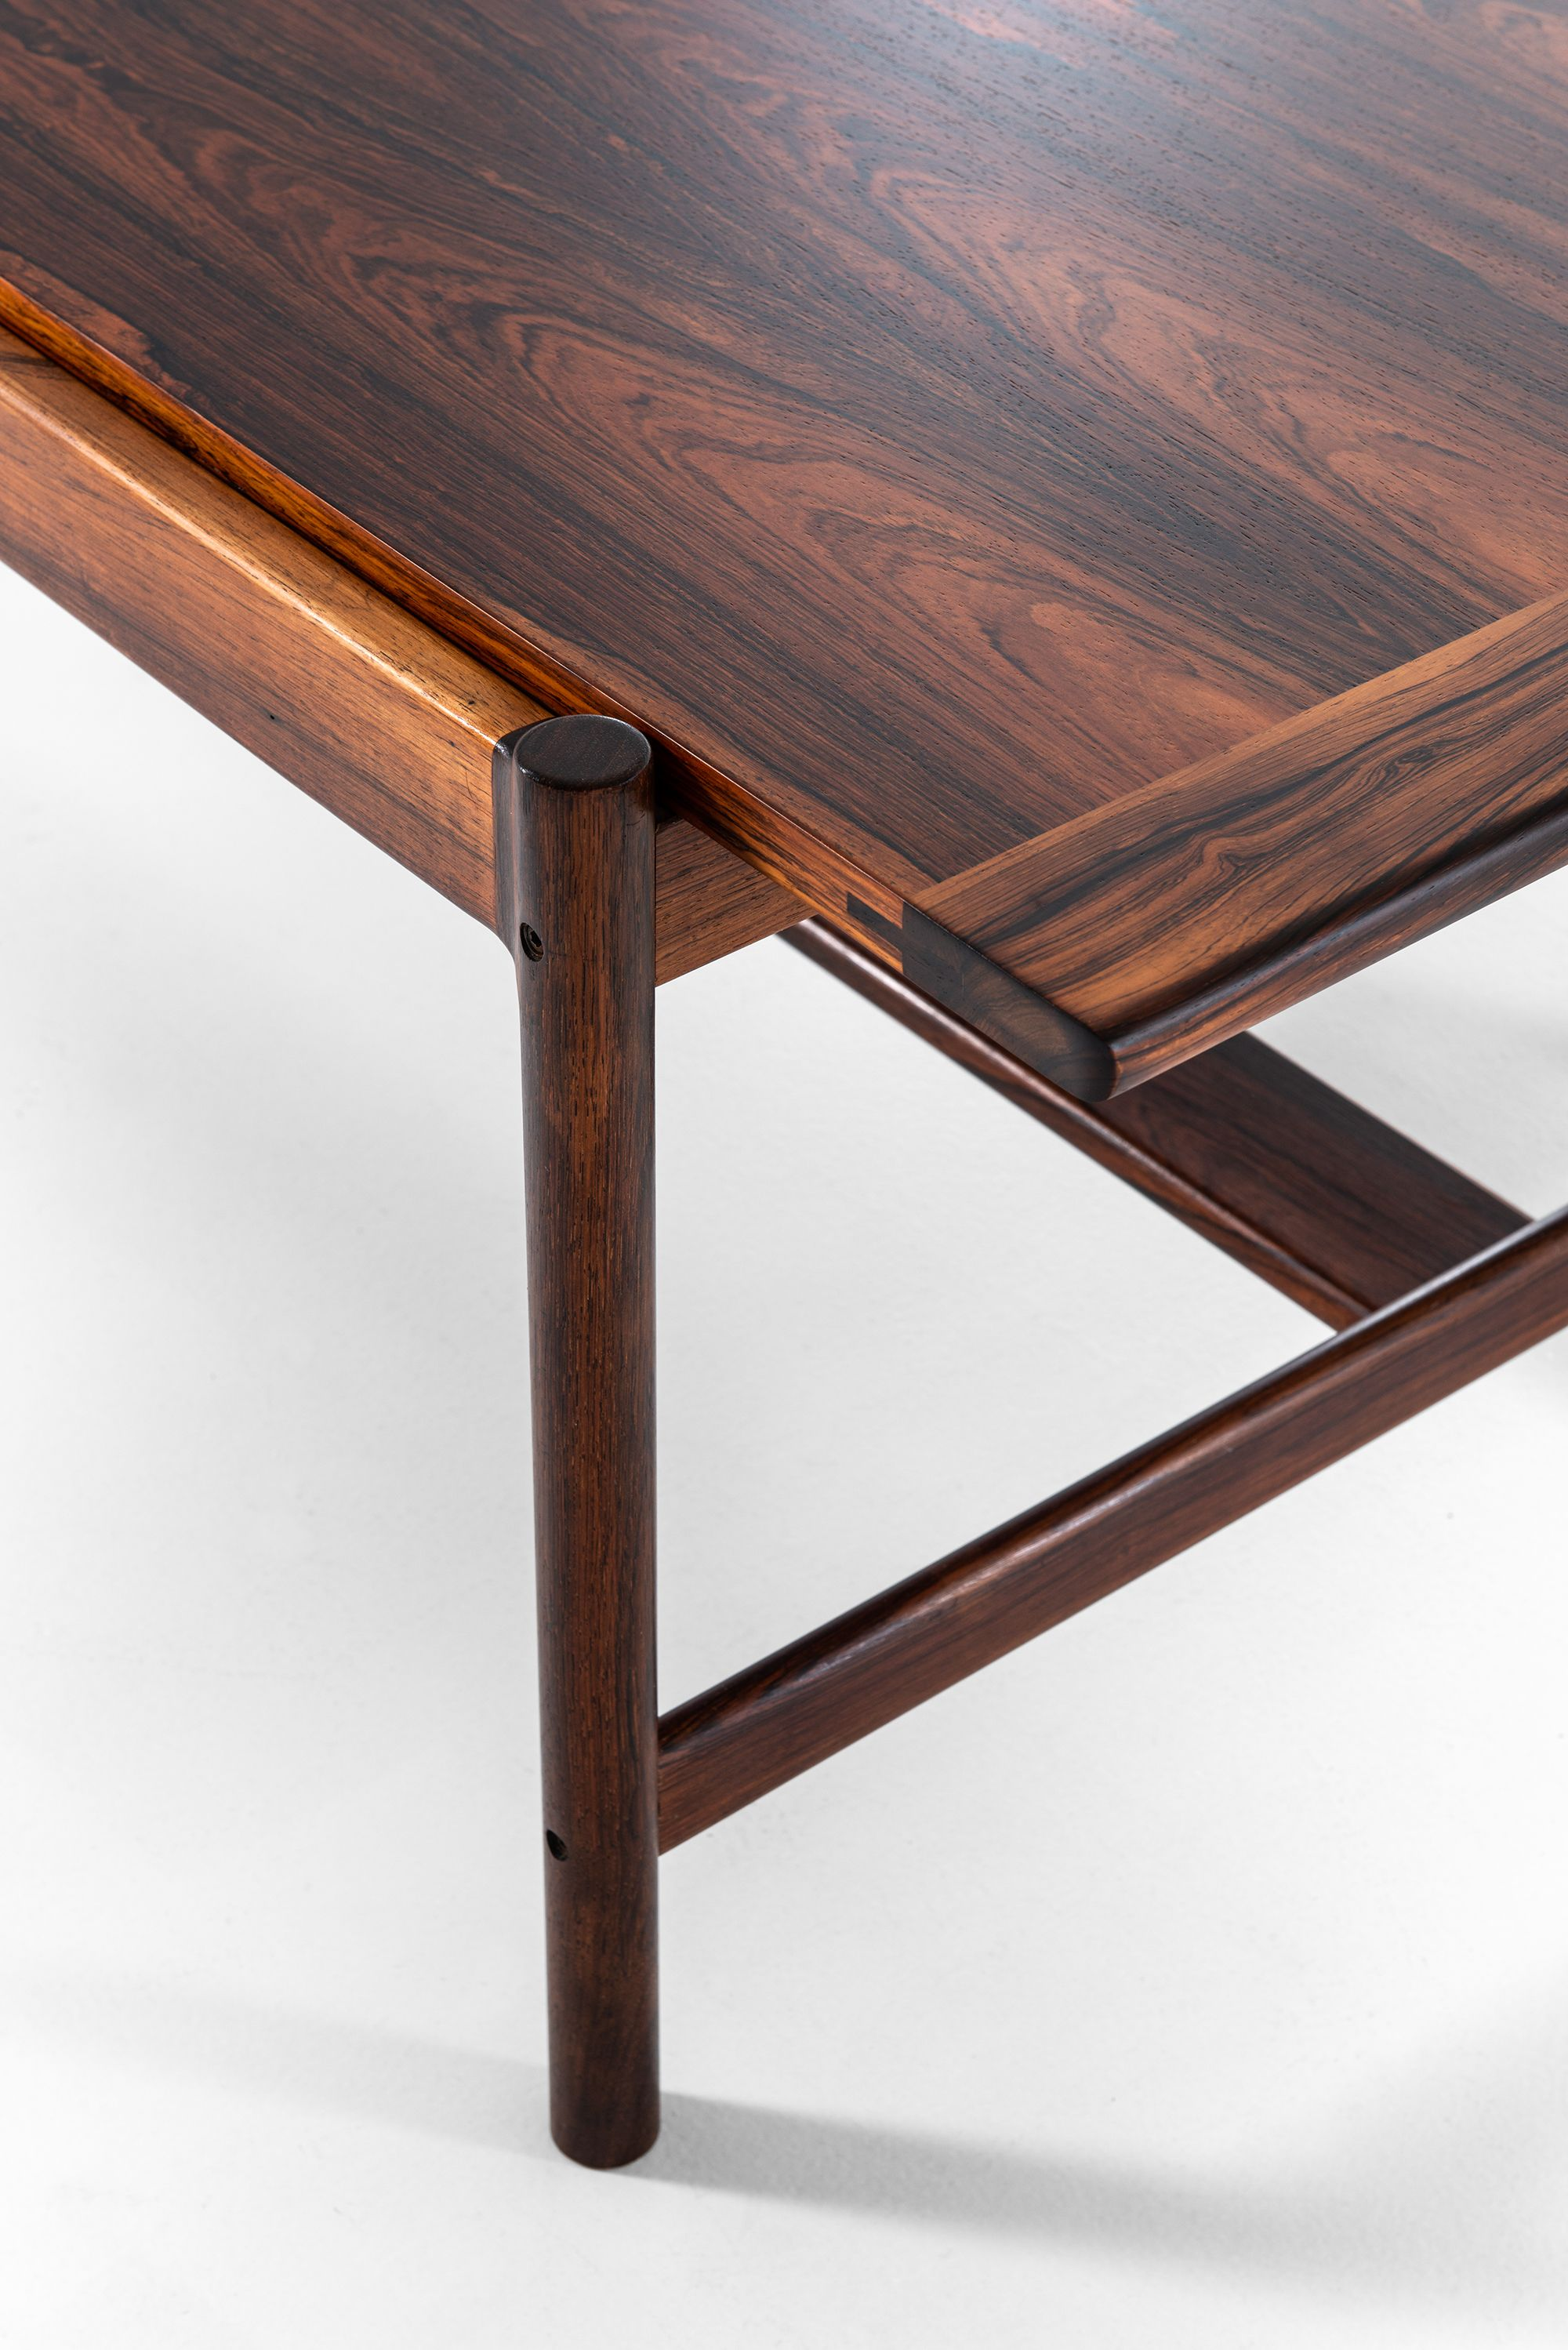 Sold Studio Schalling Rosewood Furniture Large Coffee Tables Coffee Table [ 2997 x 2000 Pixel ]